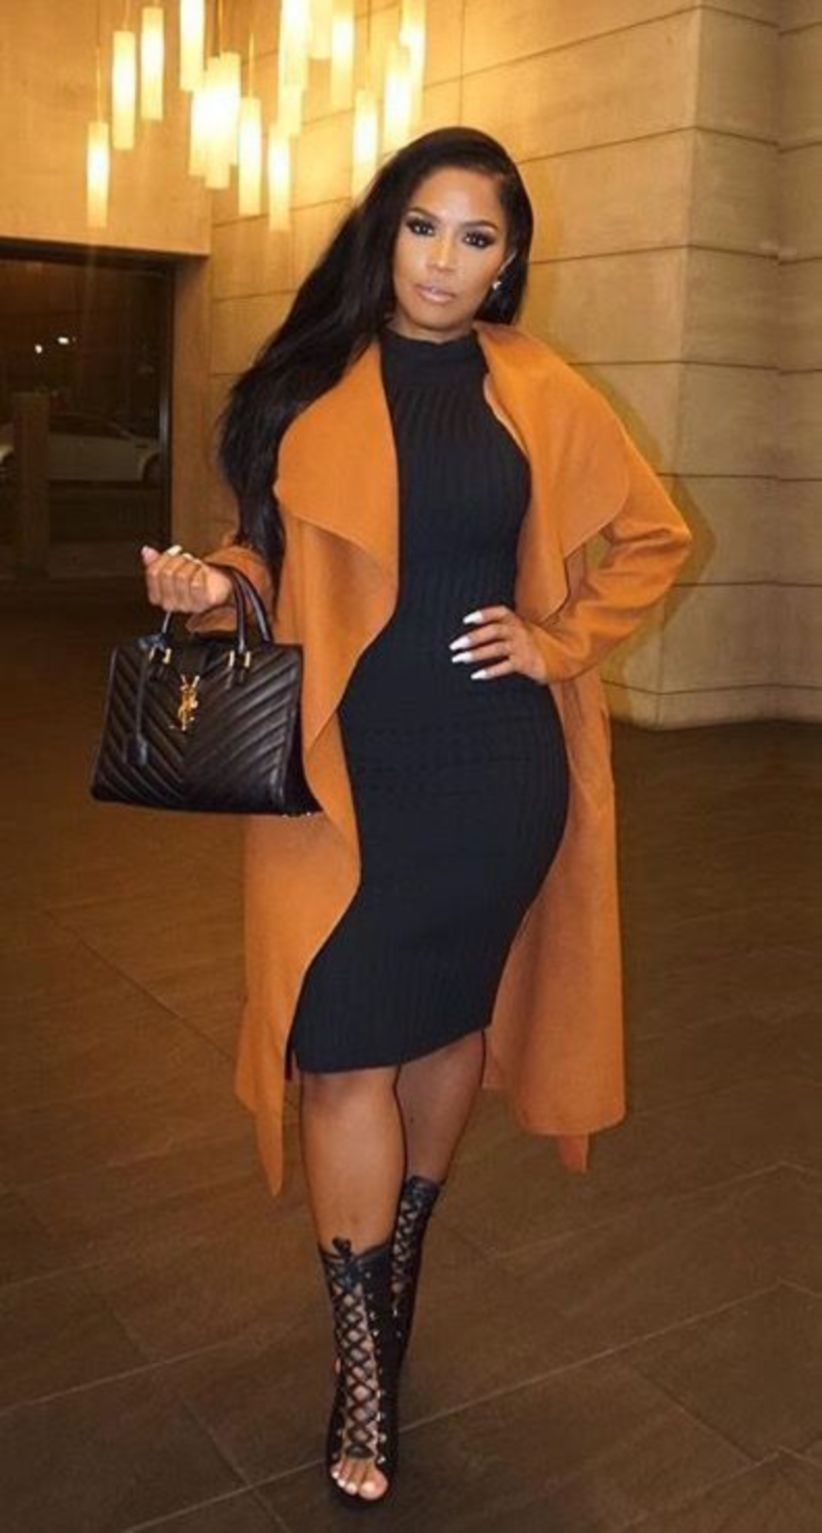 Pin by Linda S. on Size clothing | Birthday outfit for ...